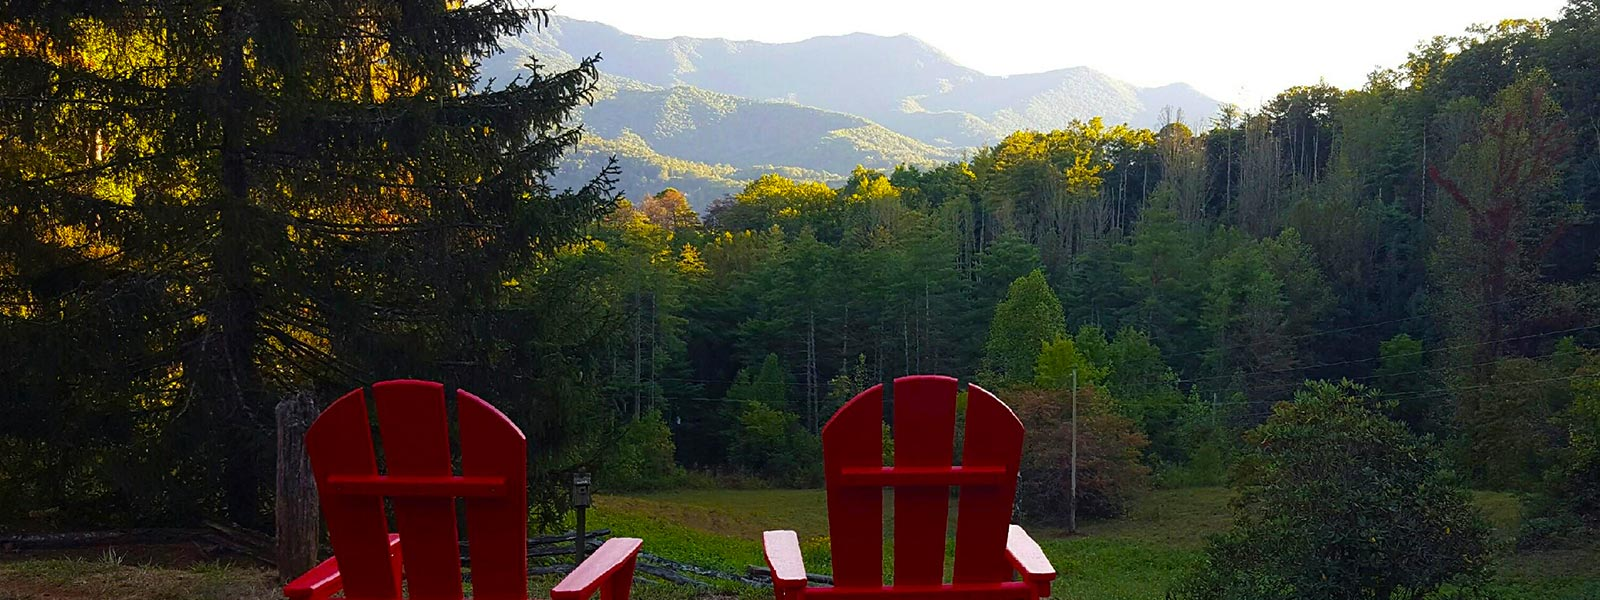 hemlock-inn-asheville-nc-blue-ridge-view